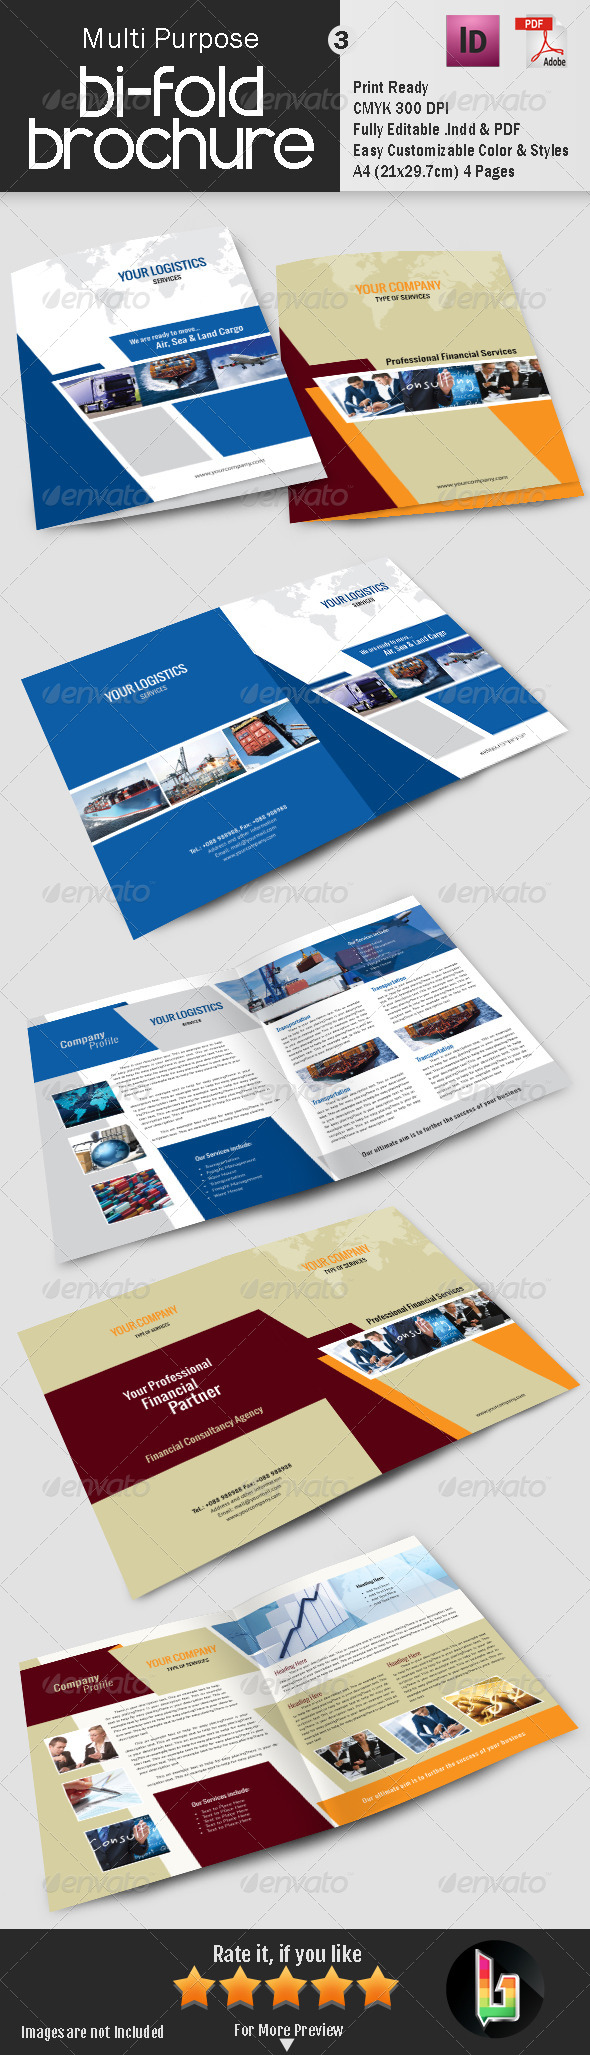 GraphicRiver Multi Purpose Bi-Fold Brochure 3 7385046